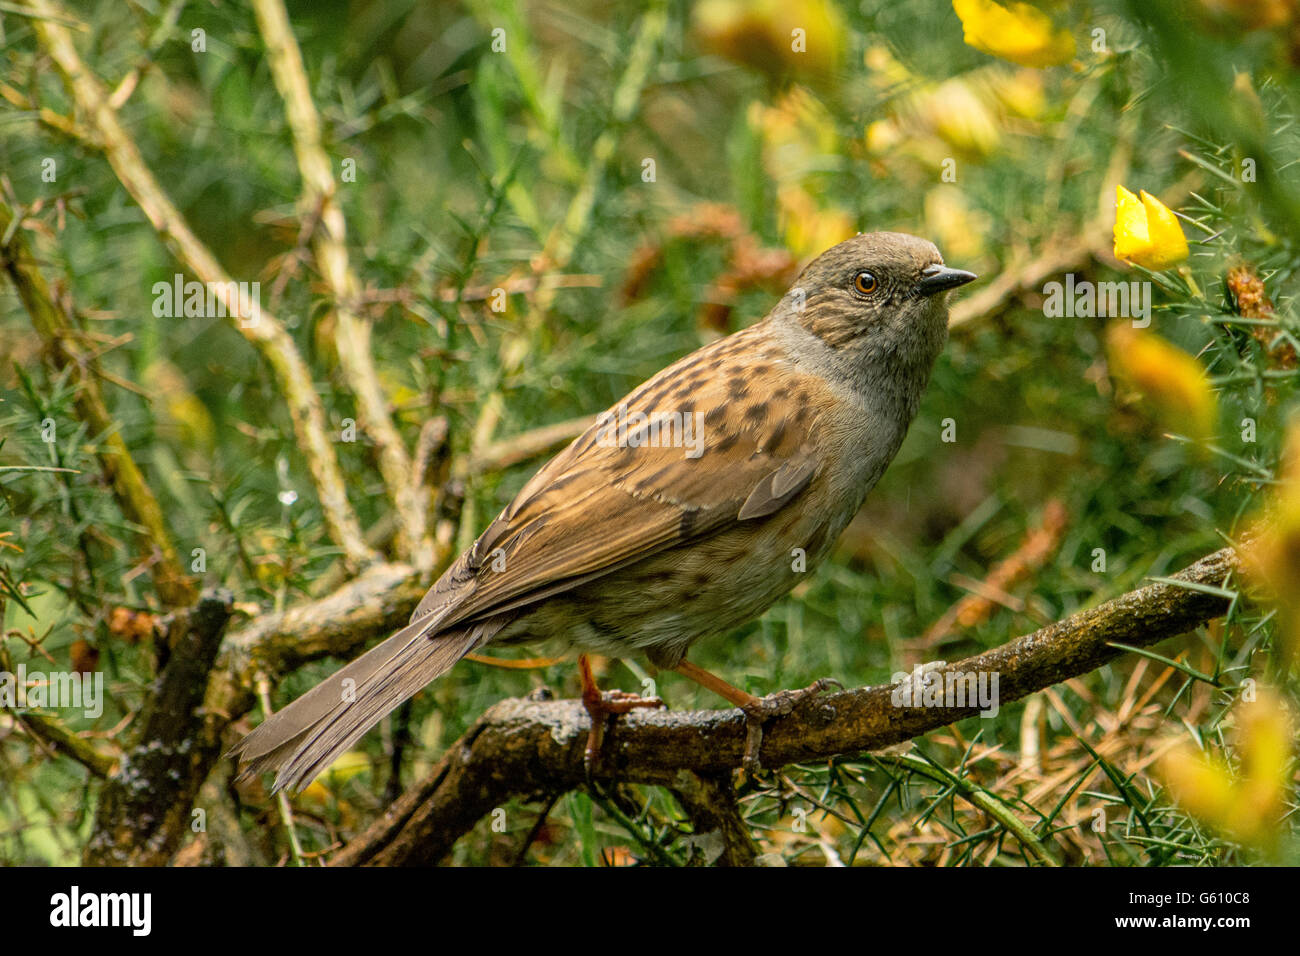 A Dunnock on a wet branch - Stock Image